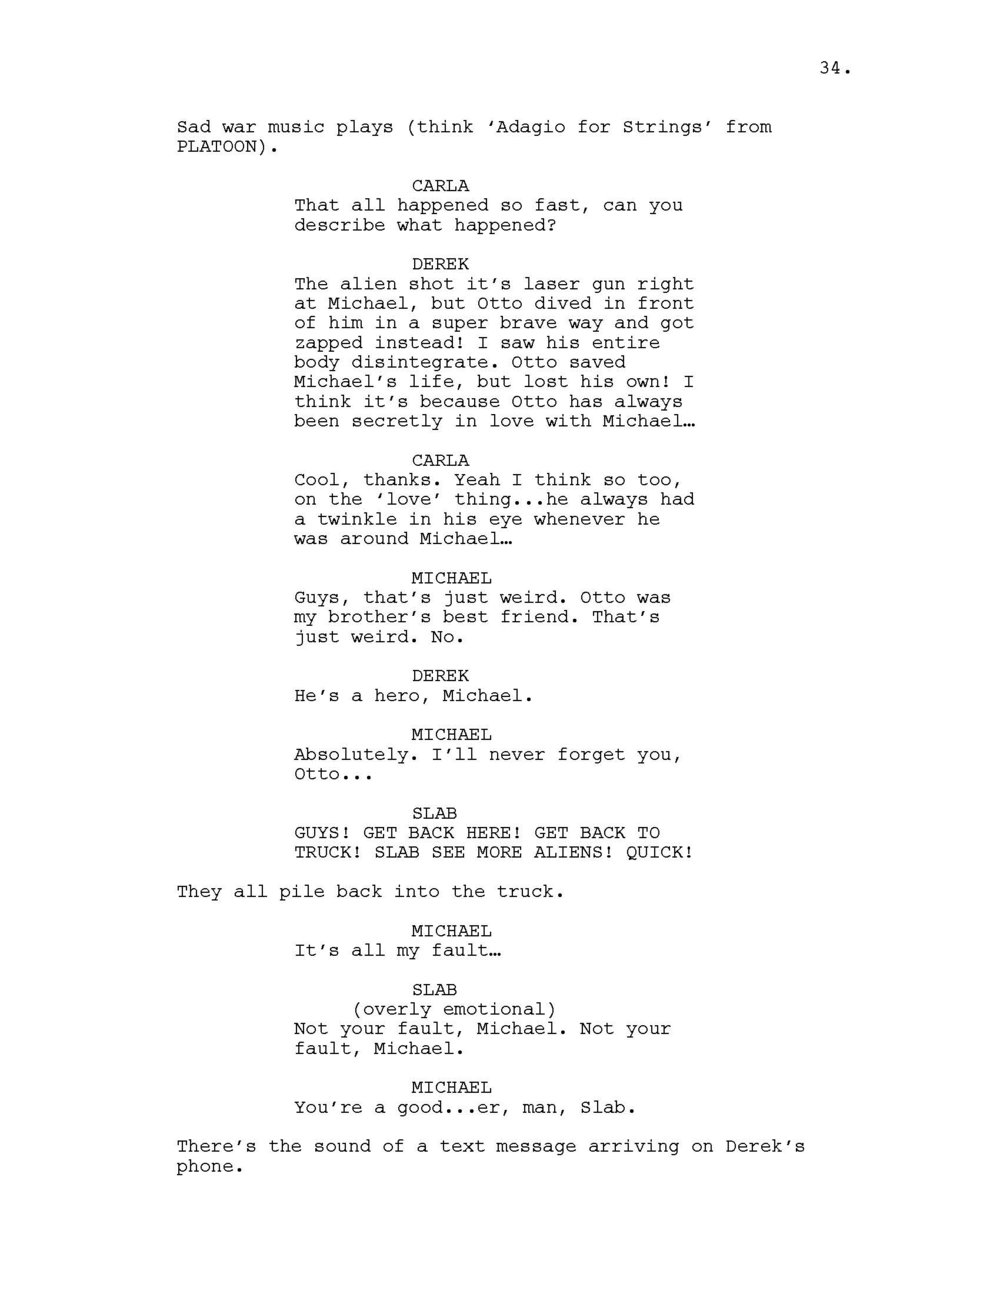 INVISIBLE WORLD SCRIPT_Page_035.jpg